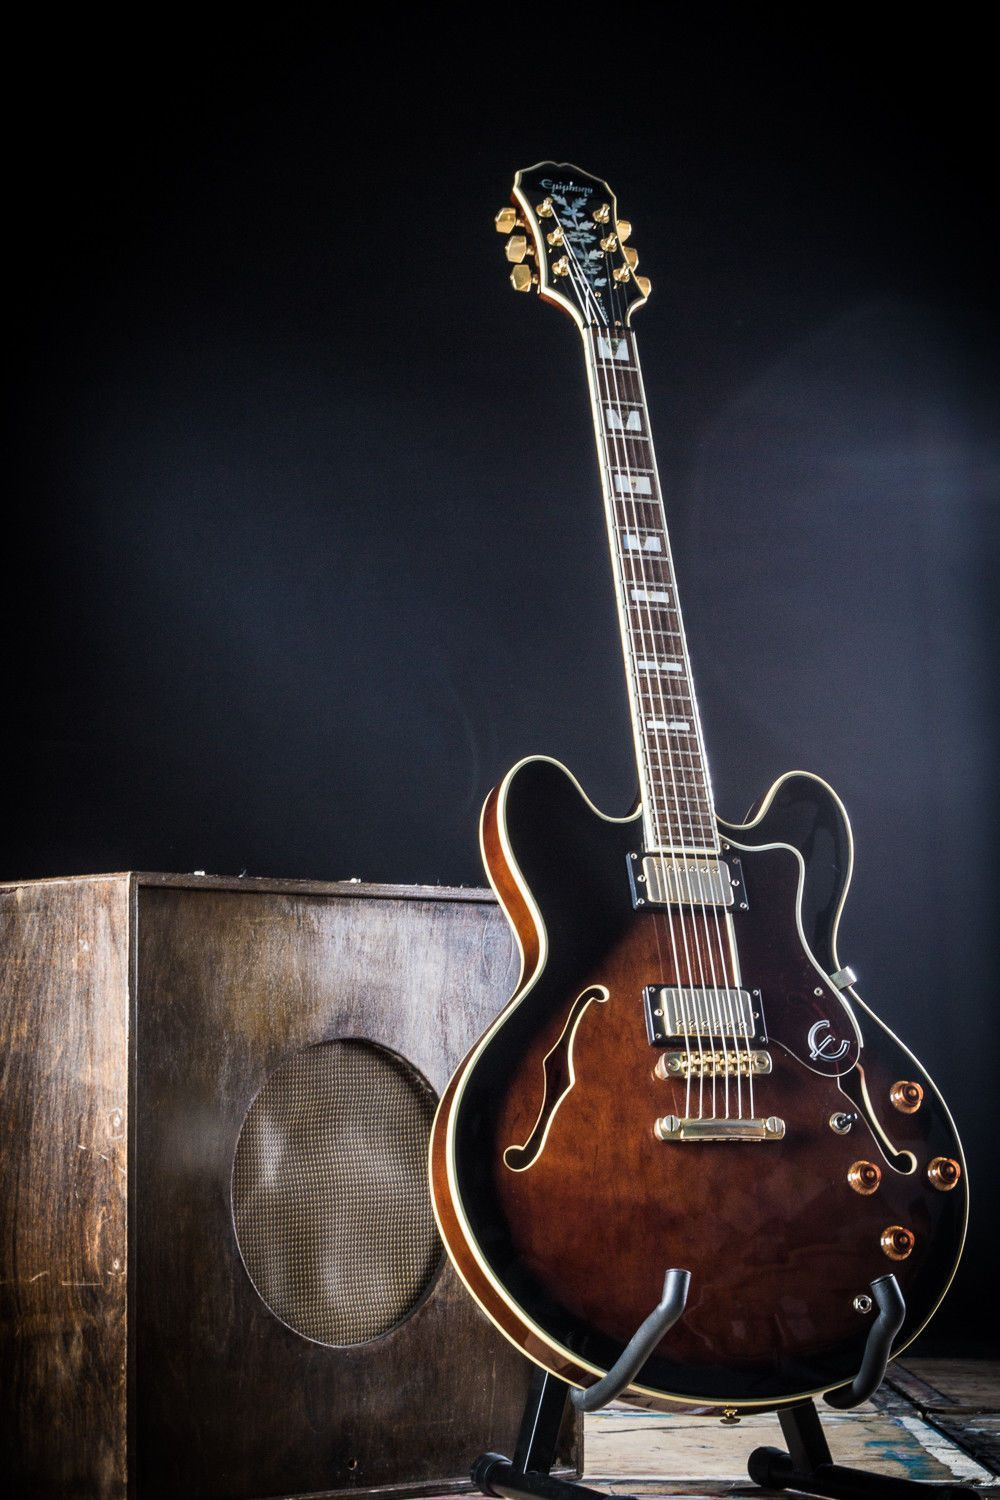 1996 Korean Epiphone By Gibson Sheraton 335 Shaped Guitar Semi On Pinterest Steampunk Fender Telecaster And Hollow Body